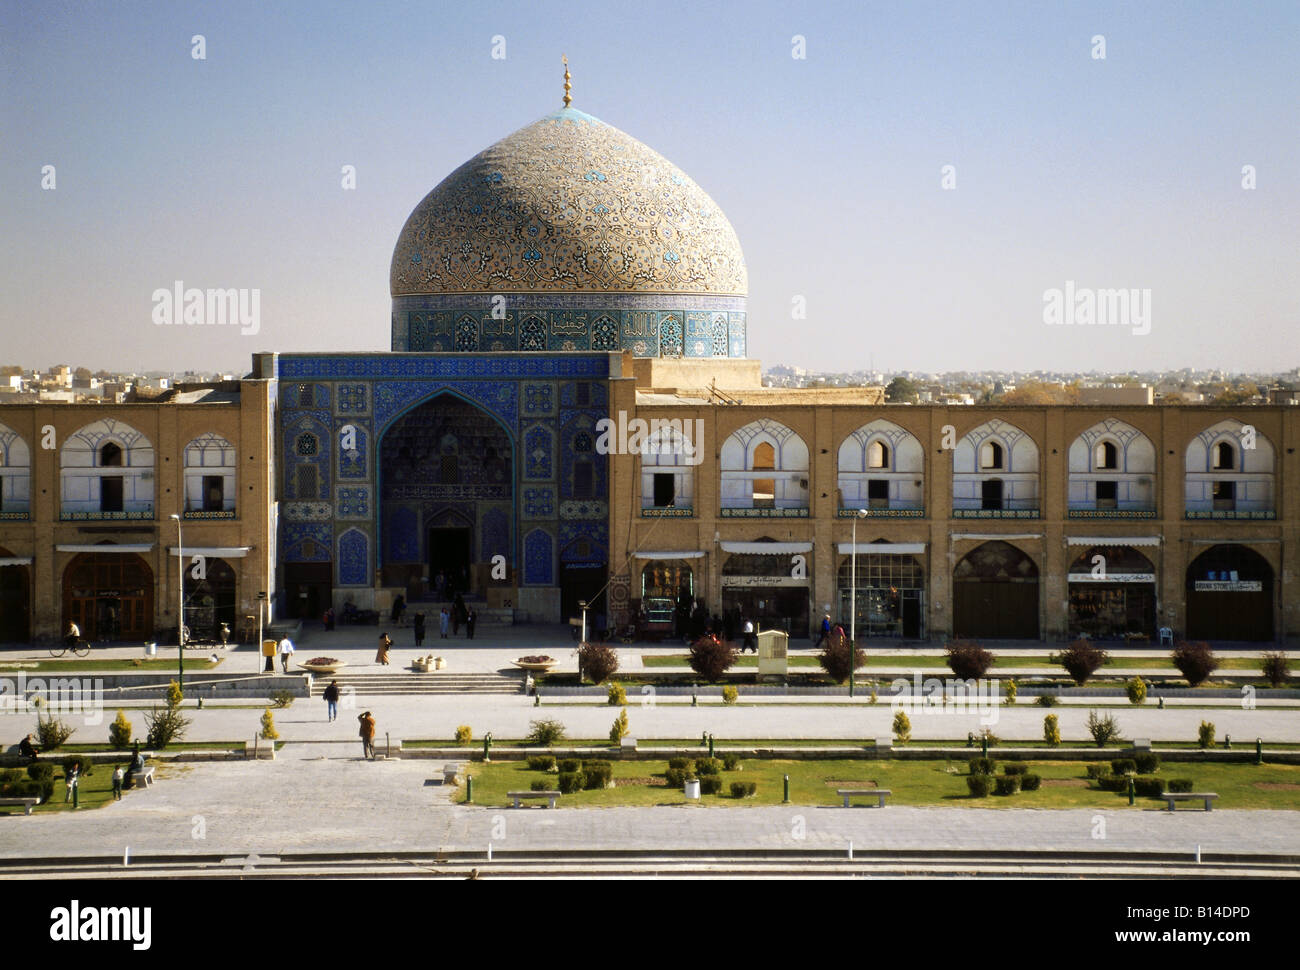 geography / travel, Iran, Isfahan, mosques, Sheik Lotf Allah Mosque, built: 1615 by Shah Abbas I of Persia, exterior - Stock Image